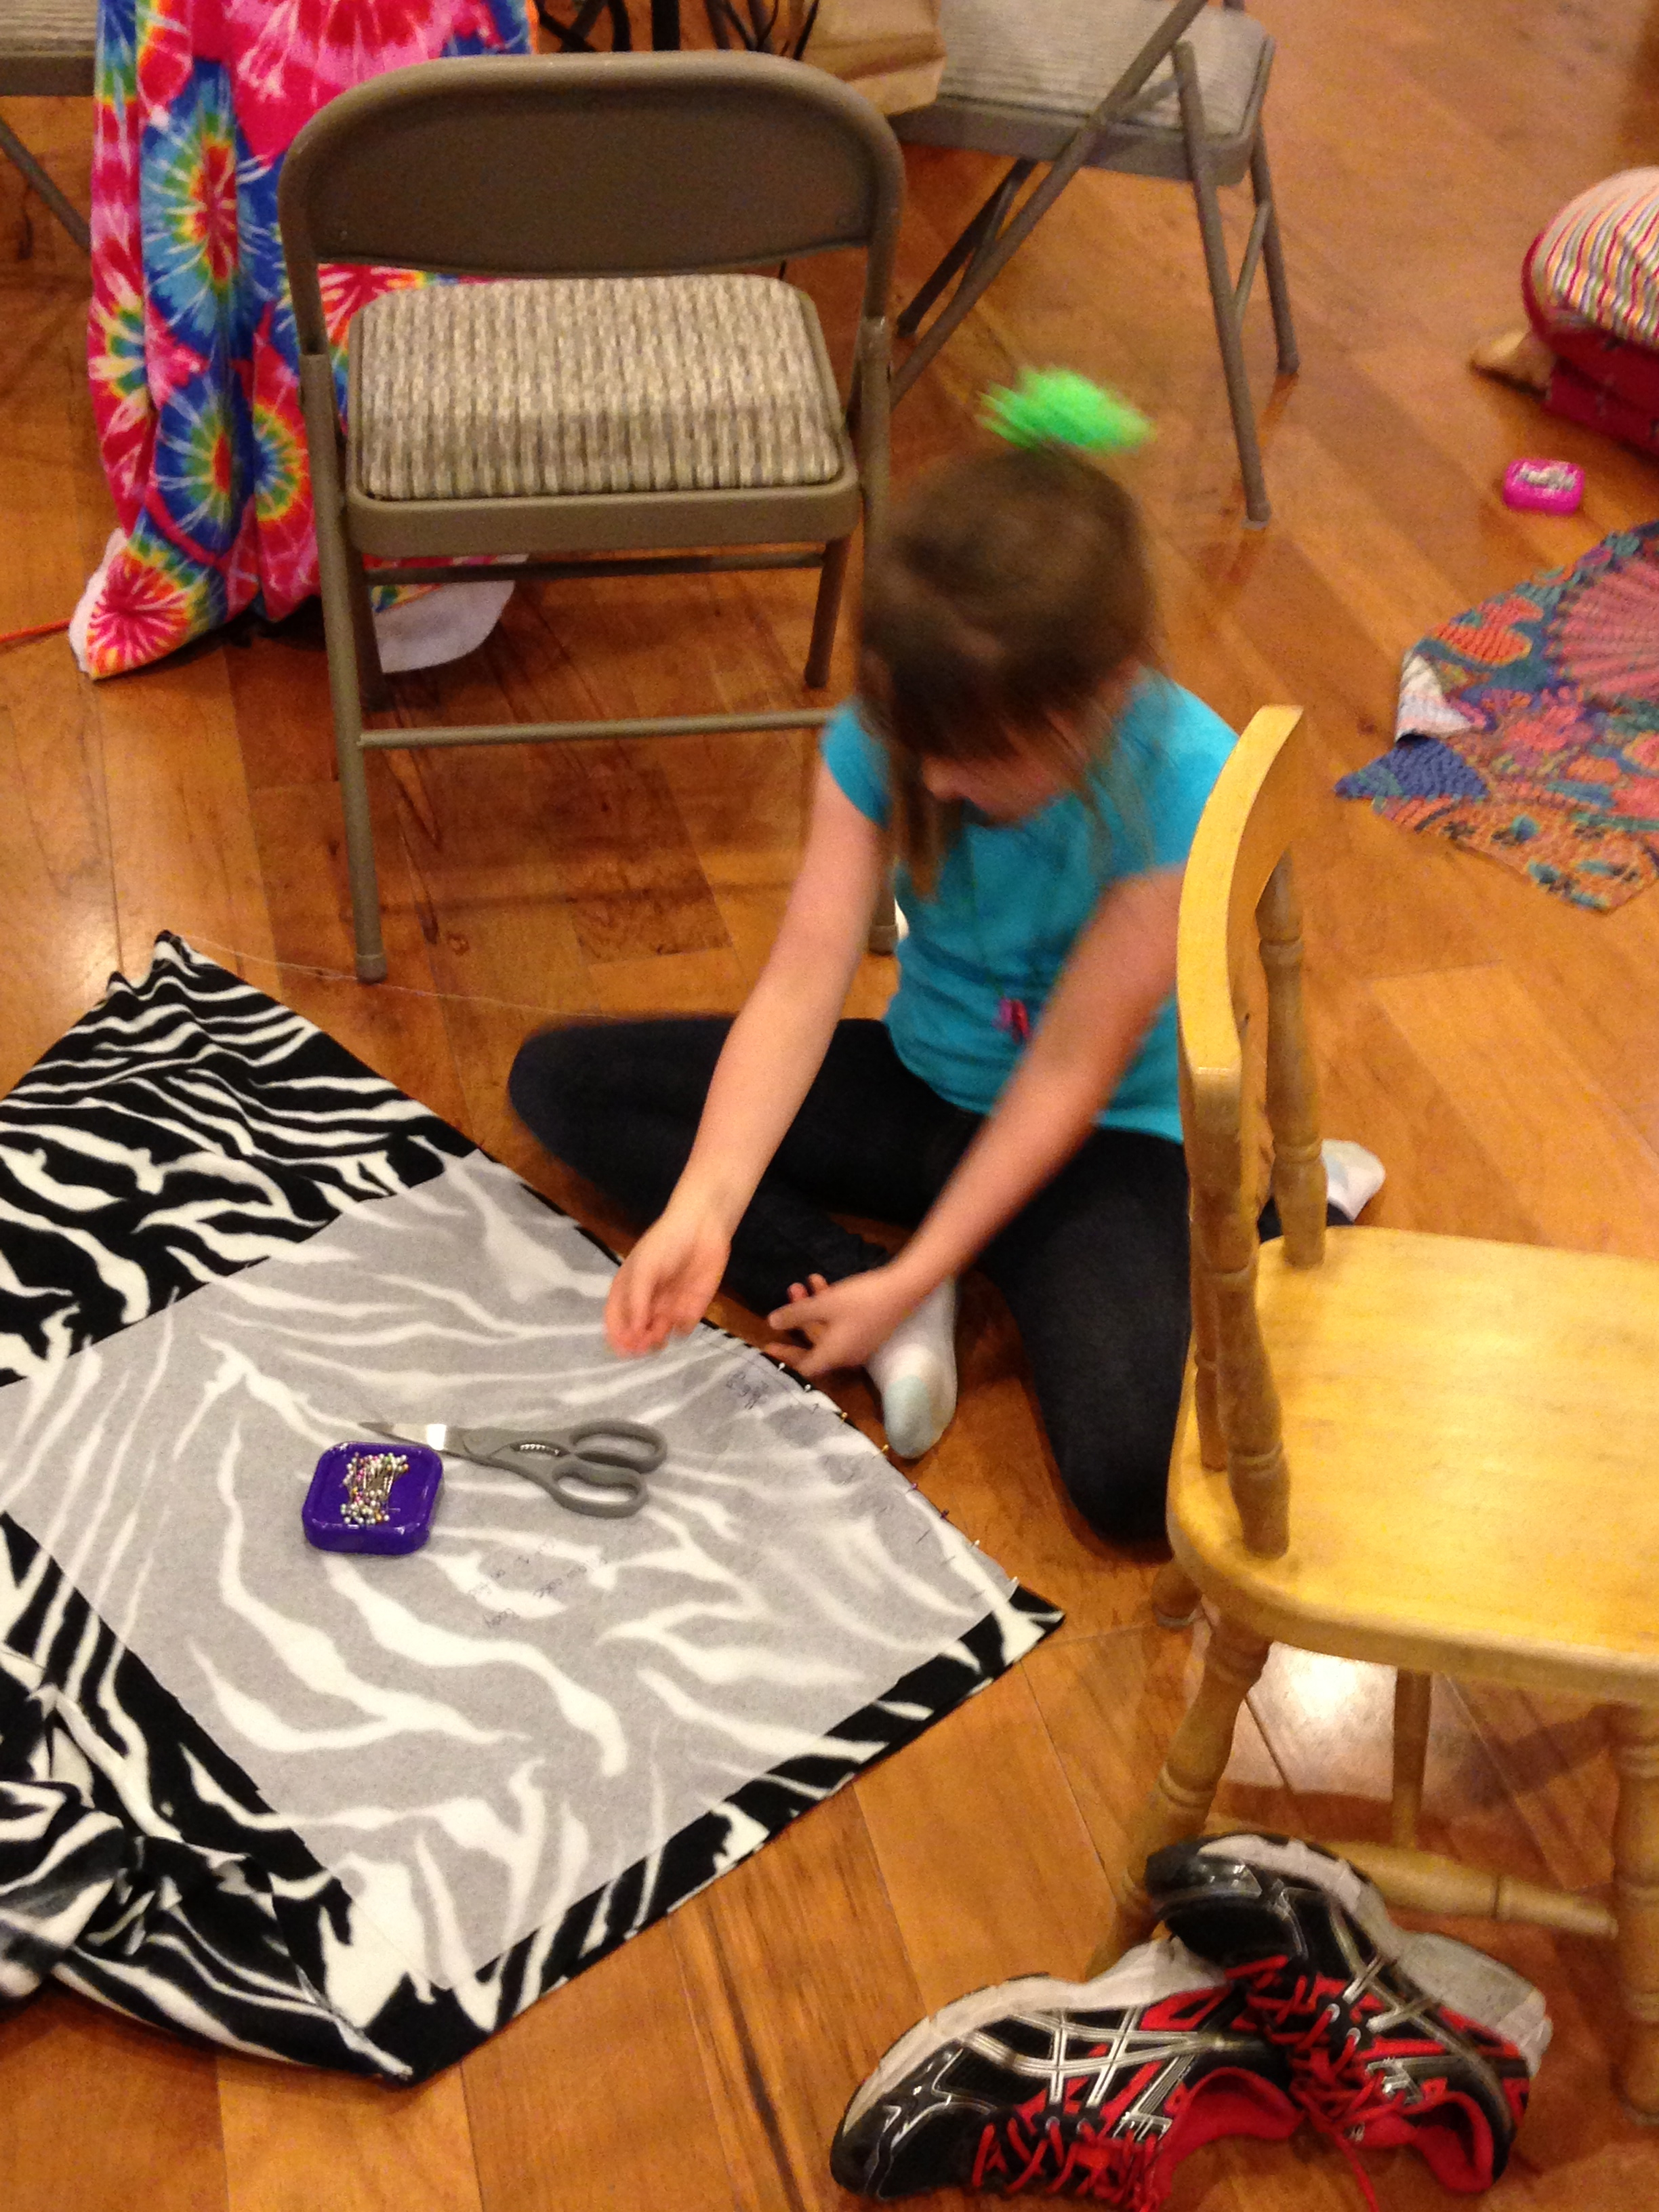 """2nd grader learning how to place a pattern piece that says, """"Place on Fold""""."""